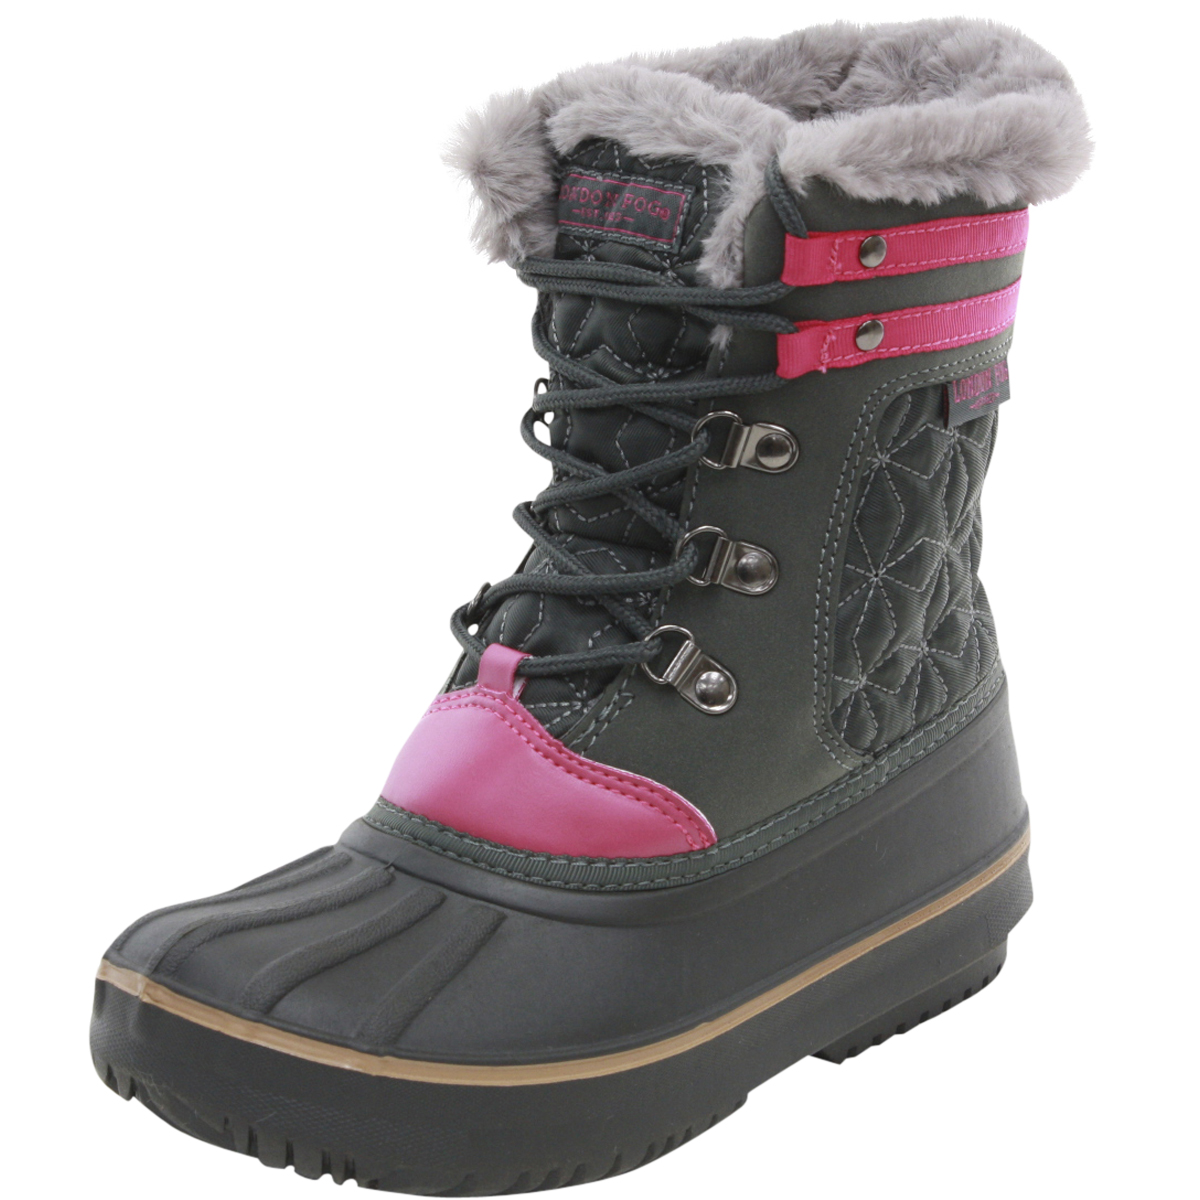 Image of London Fog Little/Big Girl's Chiswick Water Resistant Snow Boots Shoes - Grey - 12 M US Little Kid